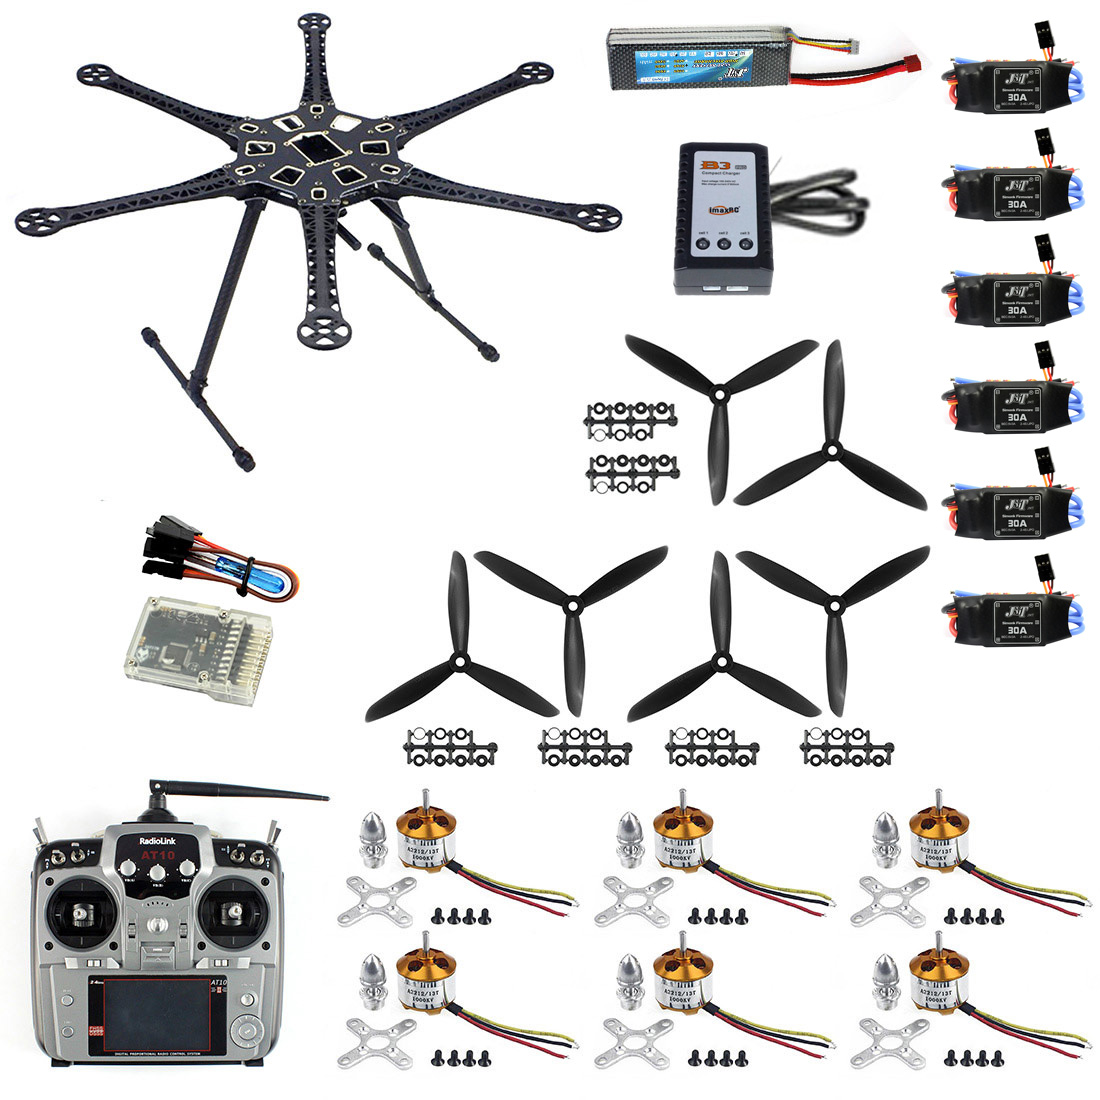 Amiable F08618-g Diy Drone Quadcopter Upgraded Full Kit Hmf S550 9045 3-propeller 6axle Multi Hexacopter Ufo Rtf/arf & 2-axle Gimbal Remote Control Toys Toys & Hobbies